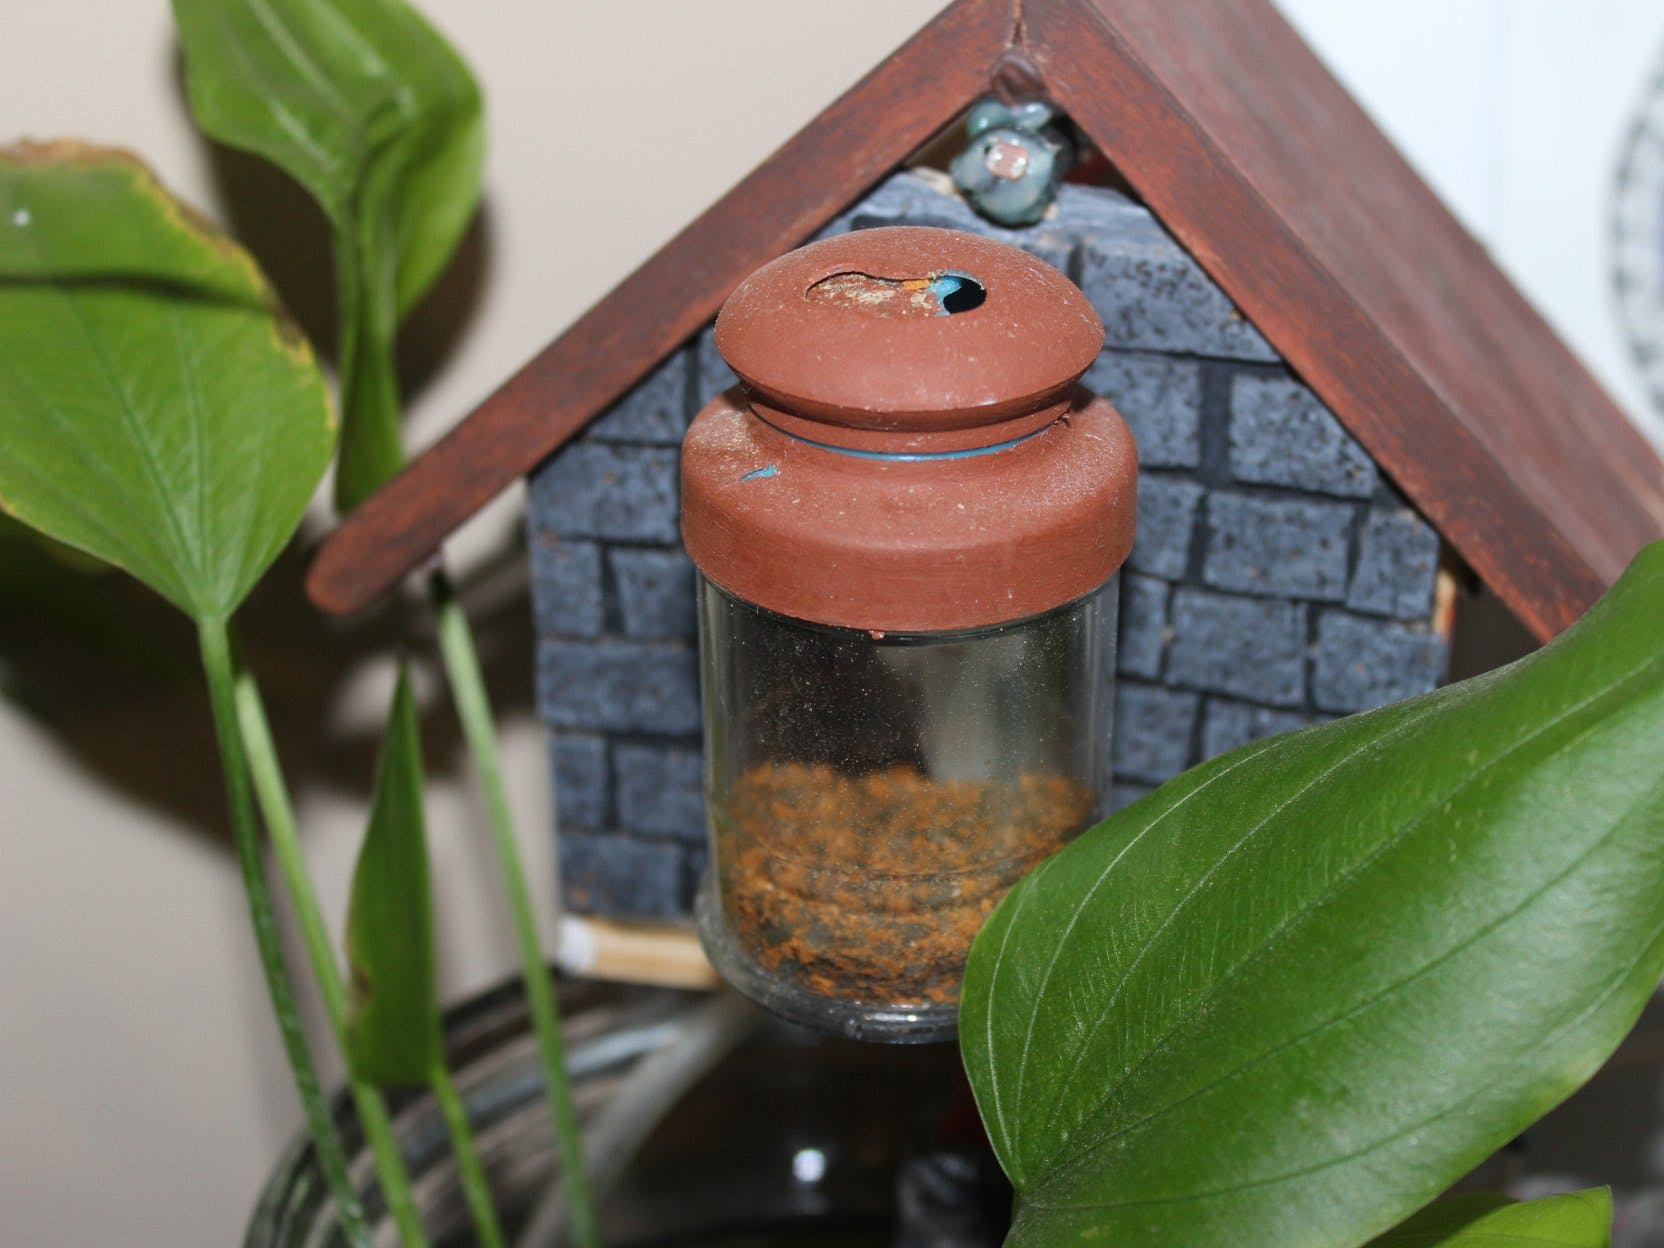 YAFF - Yet Another Fish Feeder